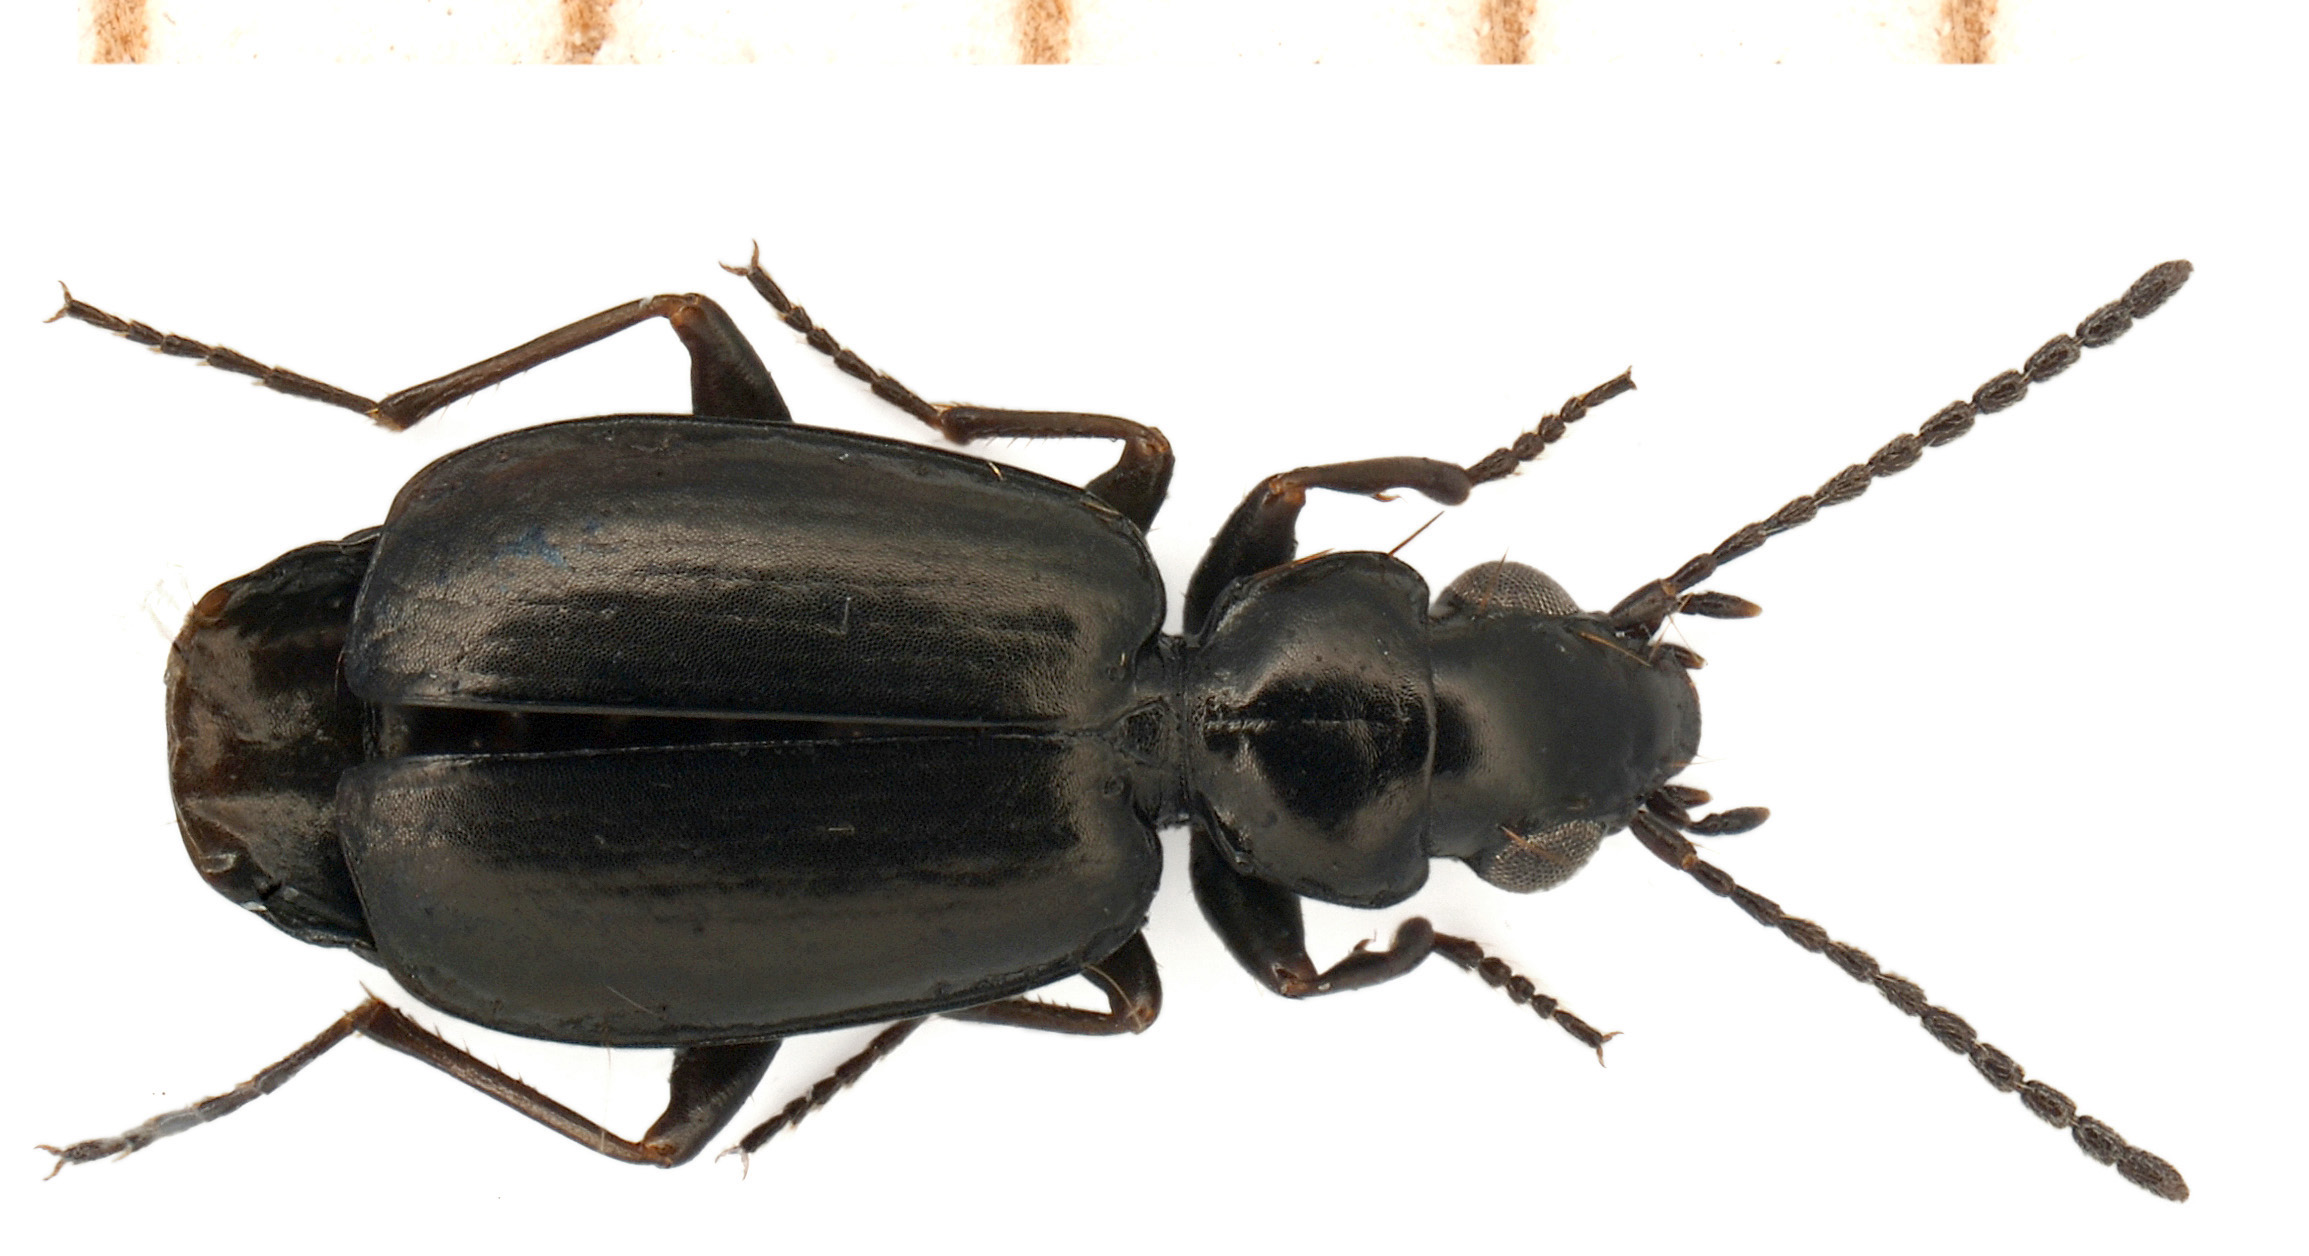 Syntomus truncatellus (Linnaeus, 1761)